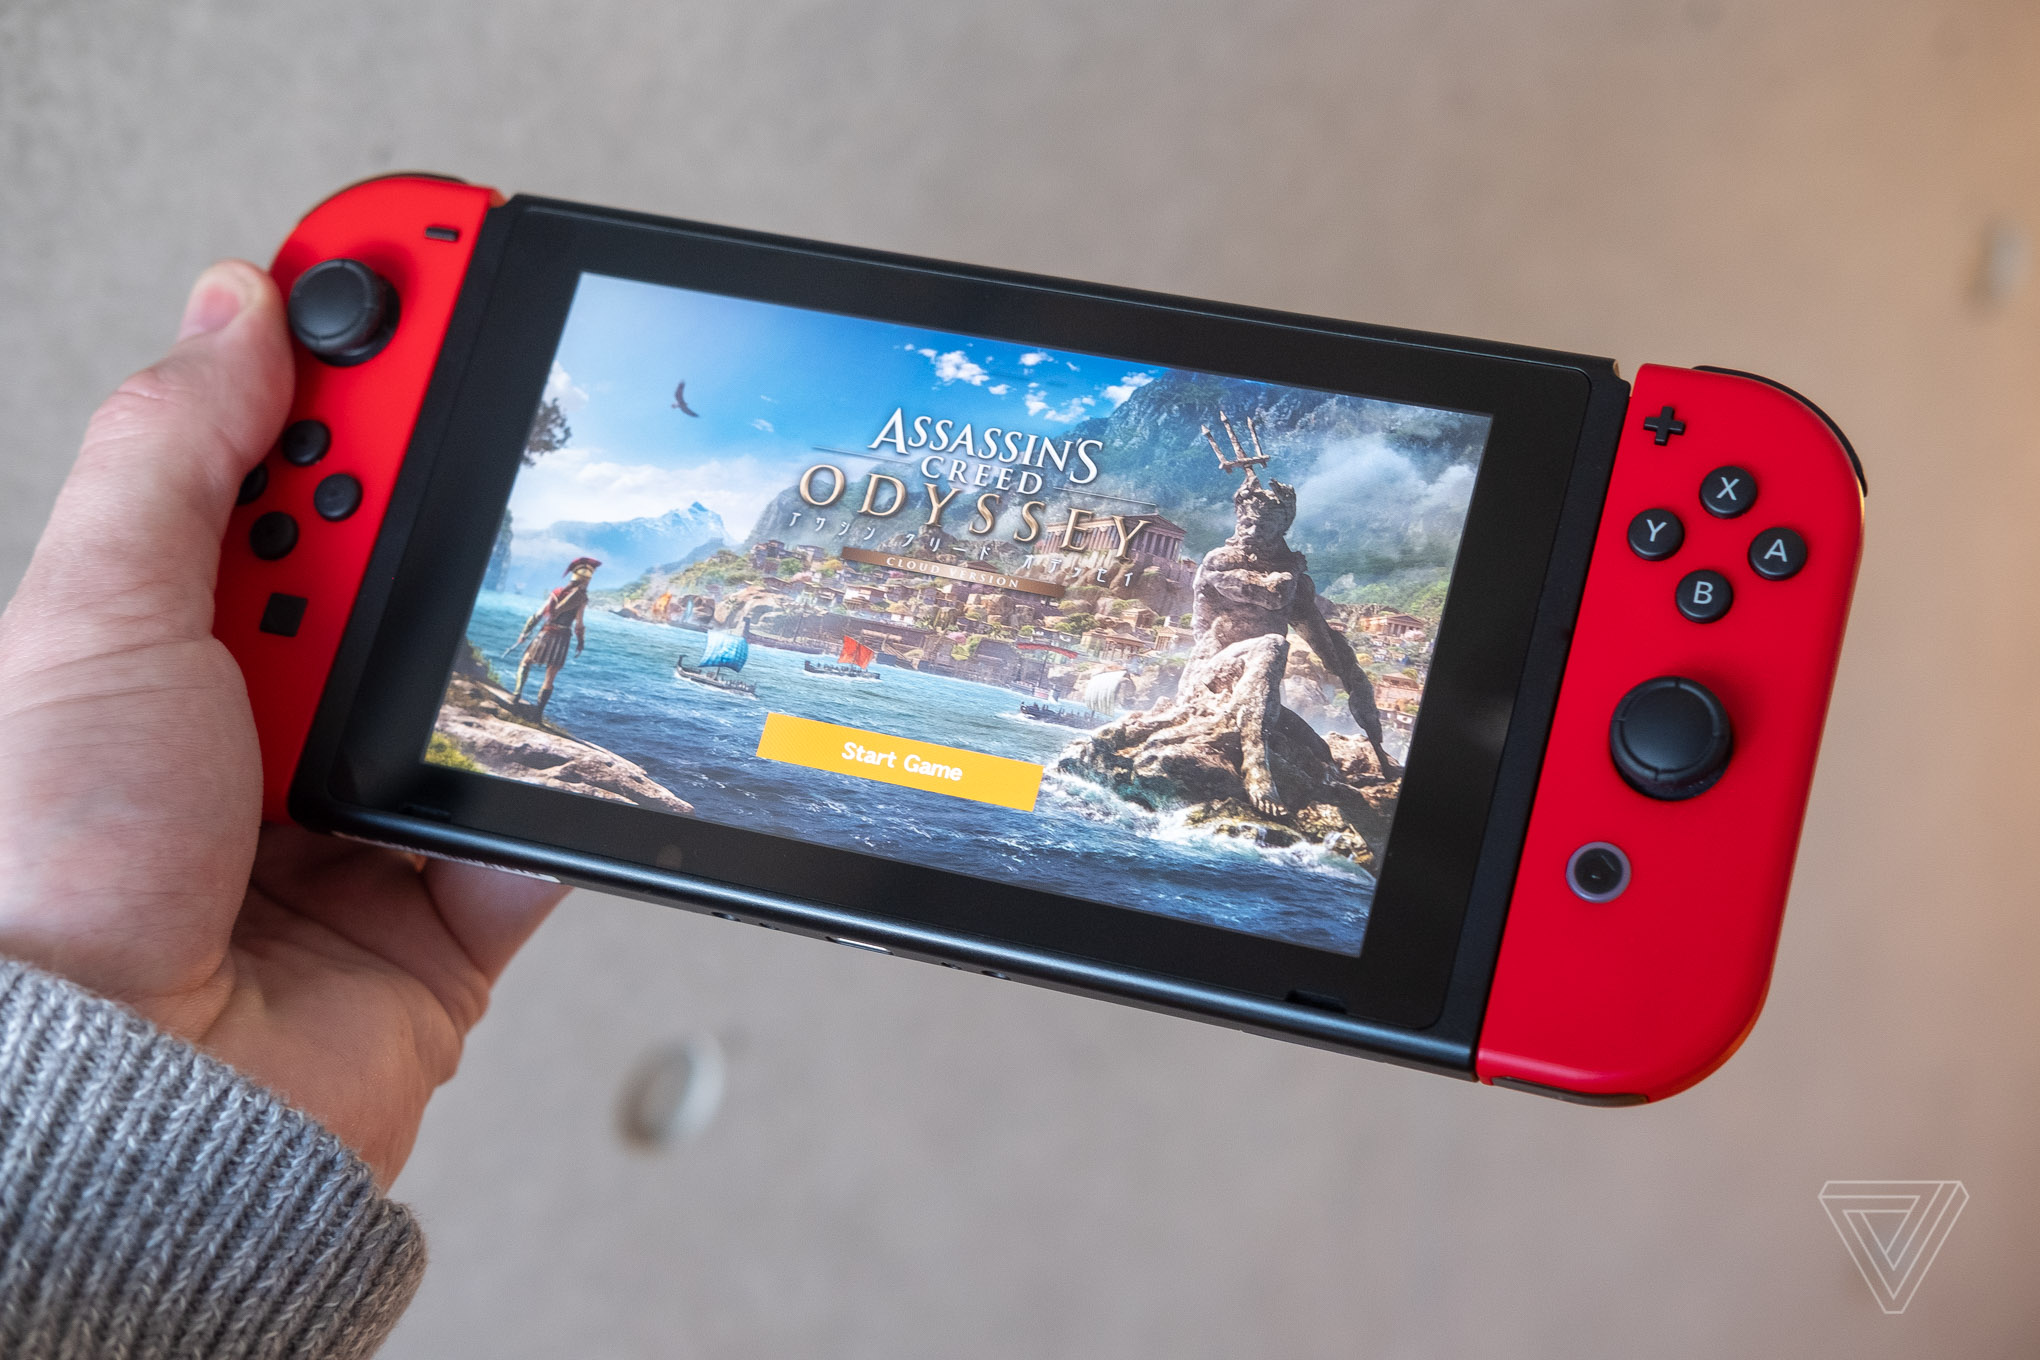 The Nintendo Switch in Japan offers a peek at the cloud